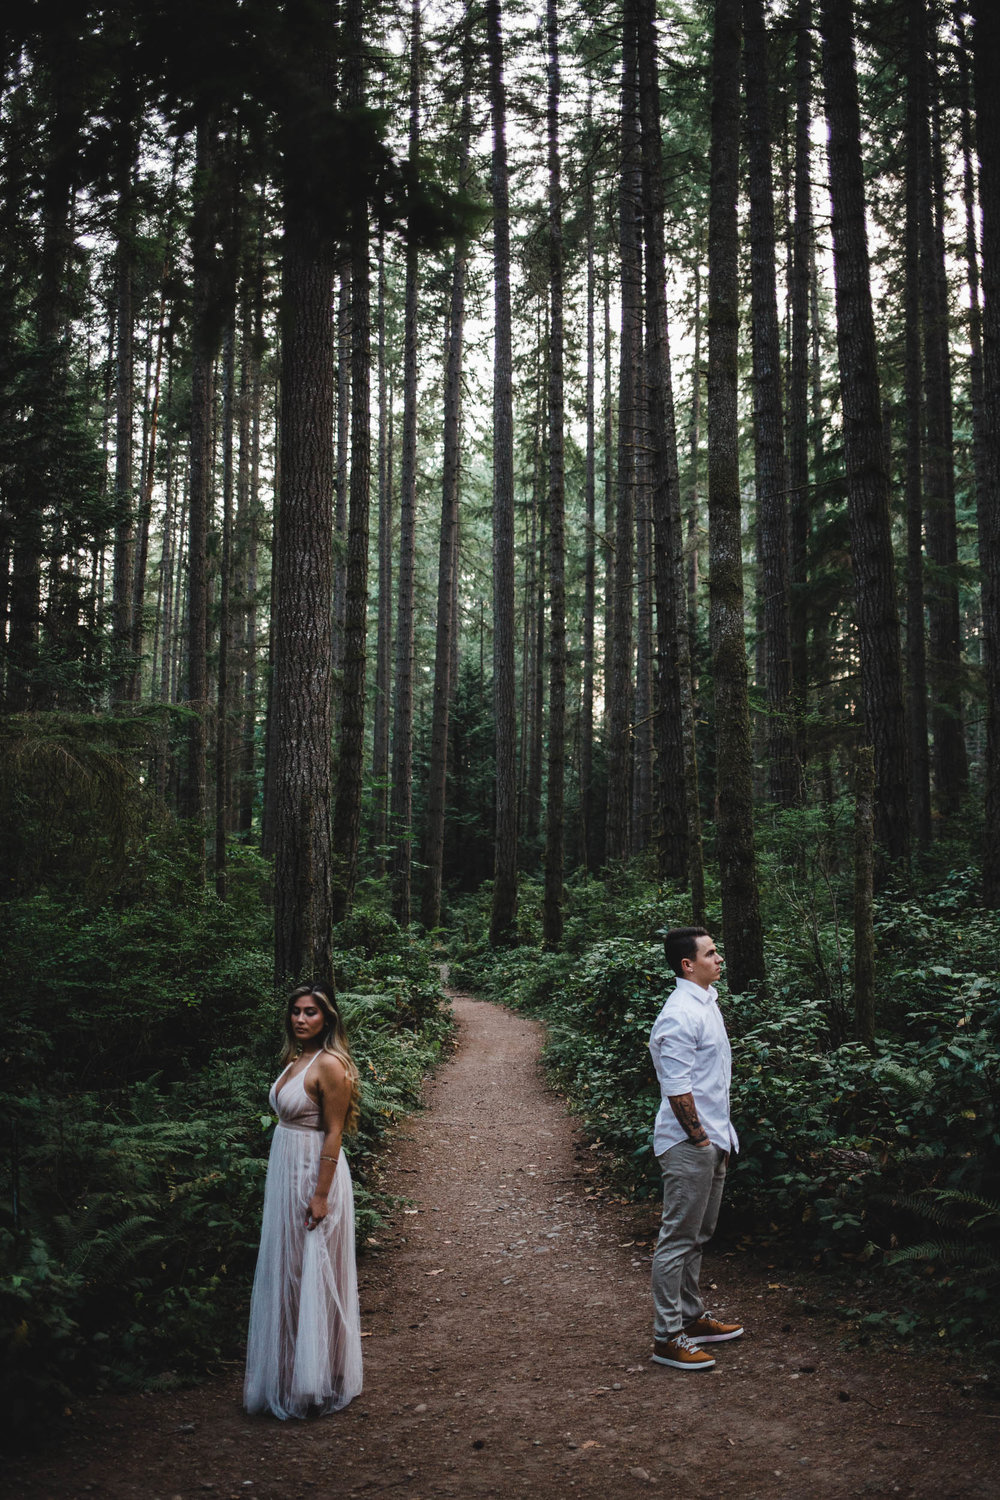 Bainbridge-Island-Elopement-KyleLovesTori-53.jpg